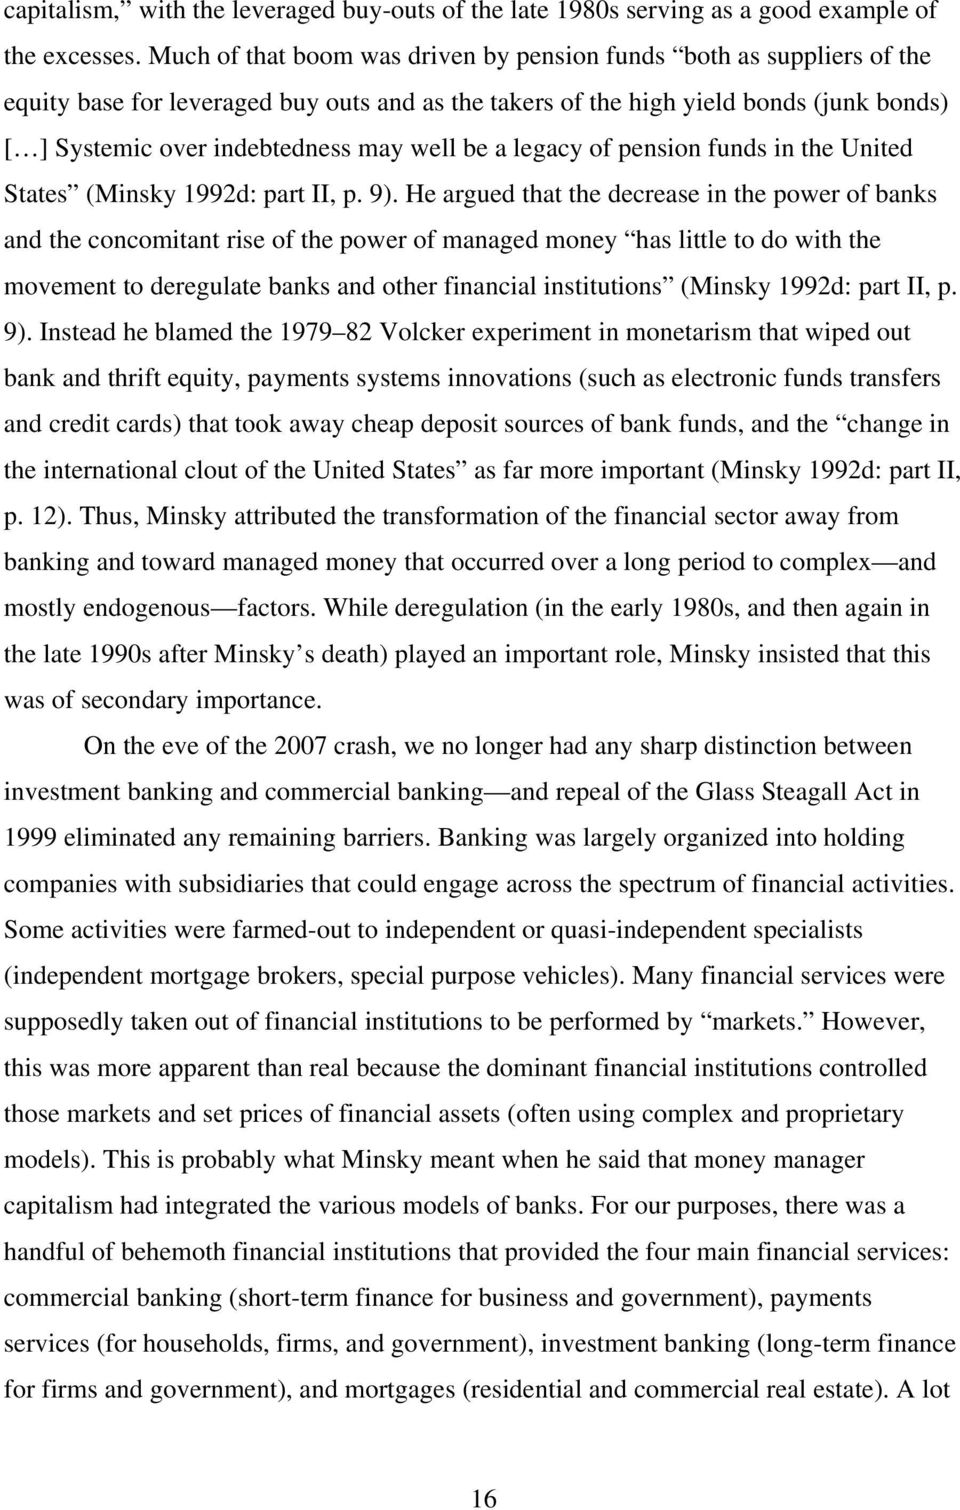 well be a legacy of pension funds in the United States (Minsky 1992d: part II, p. 9).